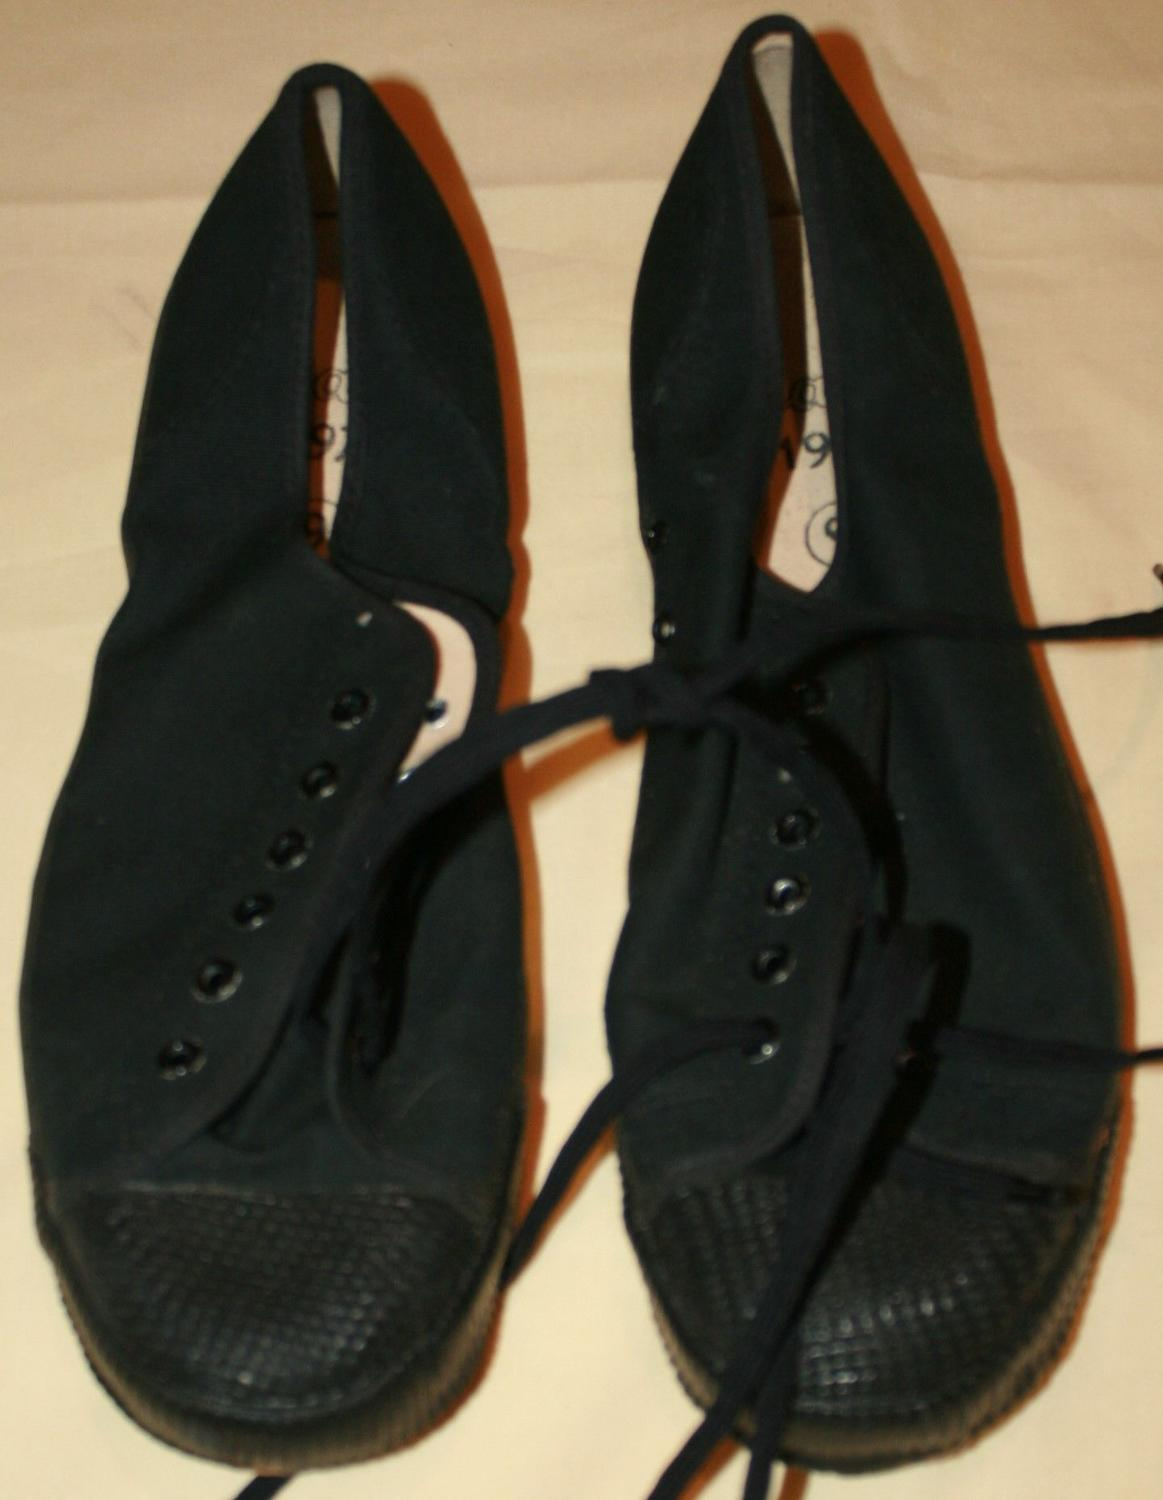 A MINT PAIR OF 1970 DATED BLACK PLIMSOLLS